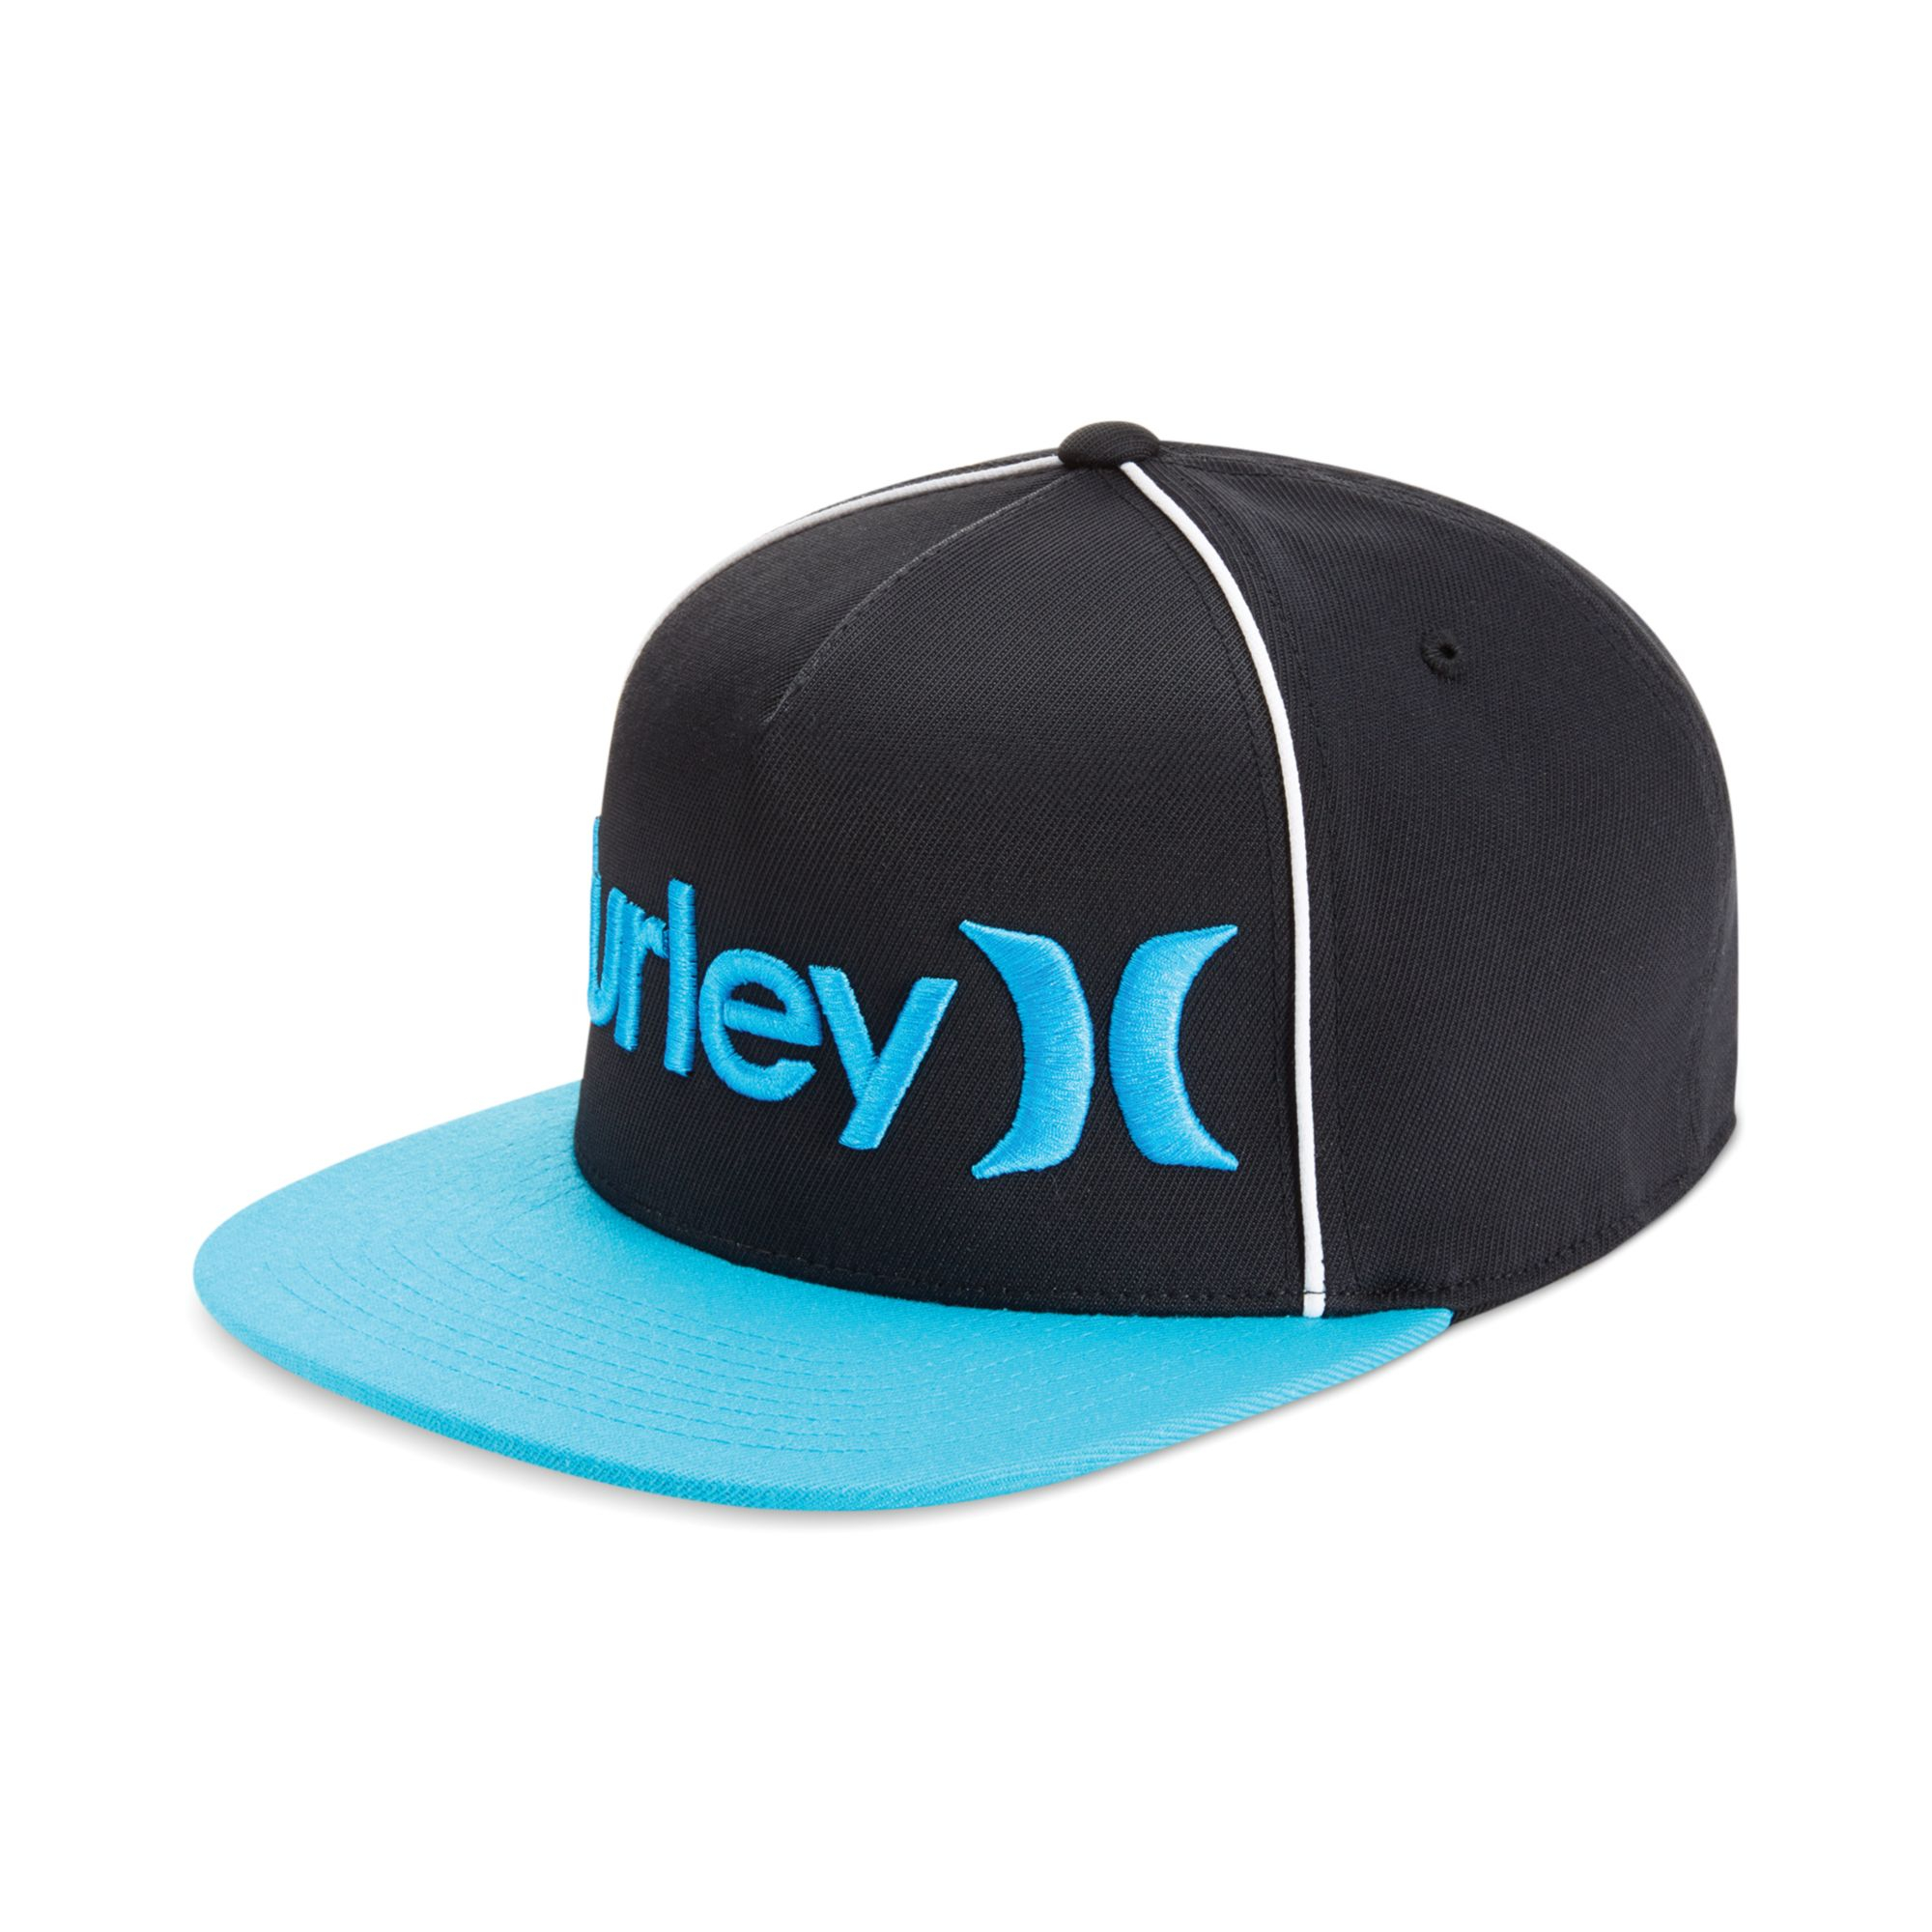 e51c51fd7a4 ... canada lyst hurley 110 only corp hat in blue for men 918e8 53c78